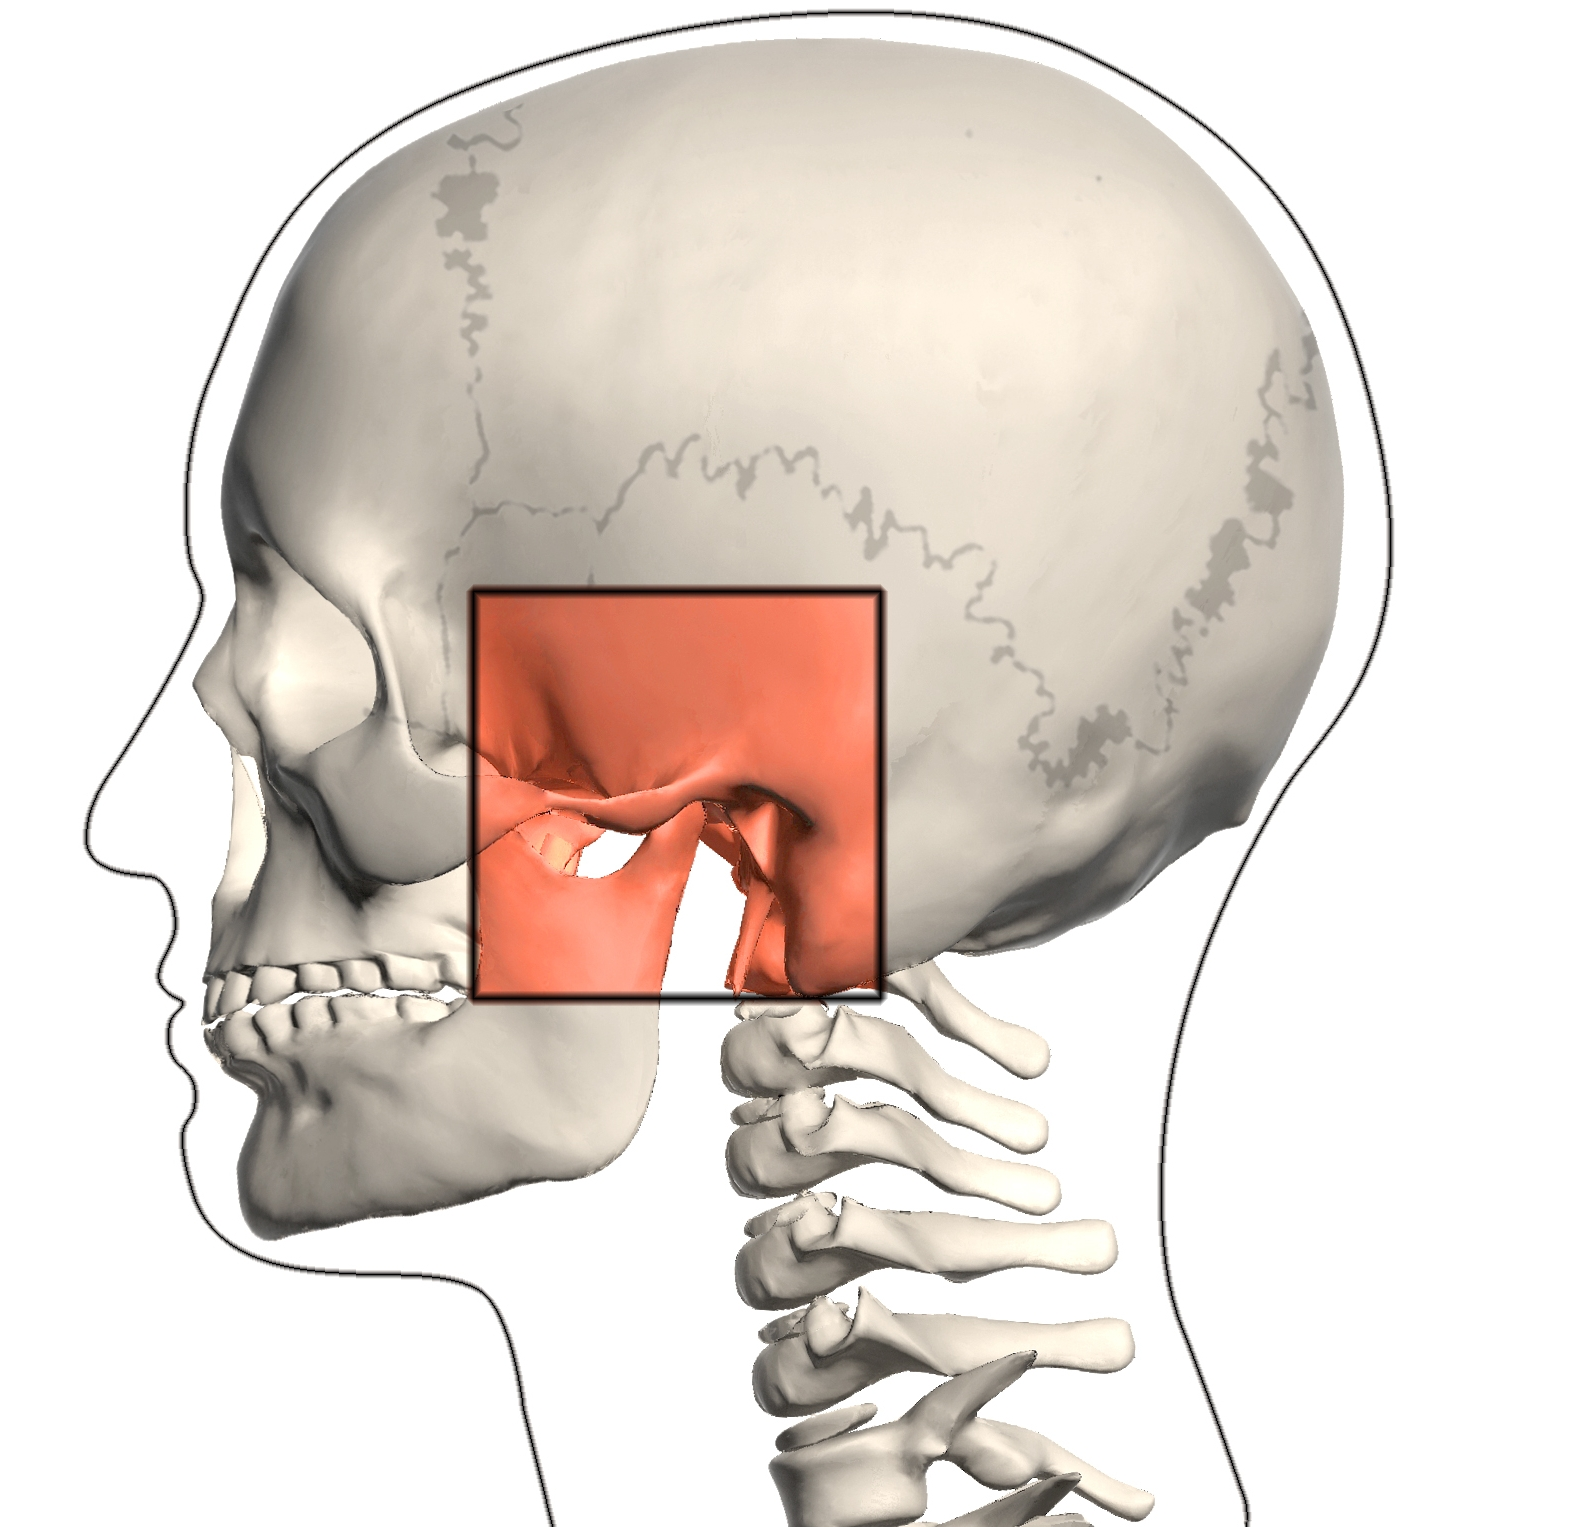 hight resolution of tmj stands for the temporomandibular joint temporal like the temple bone of your skull and mandible meaning your jaw bone